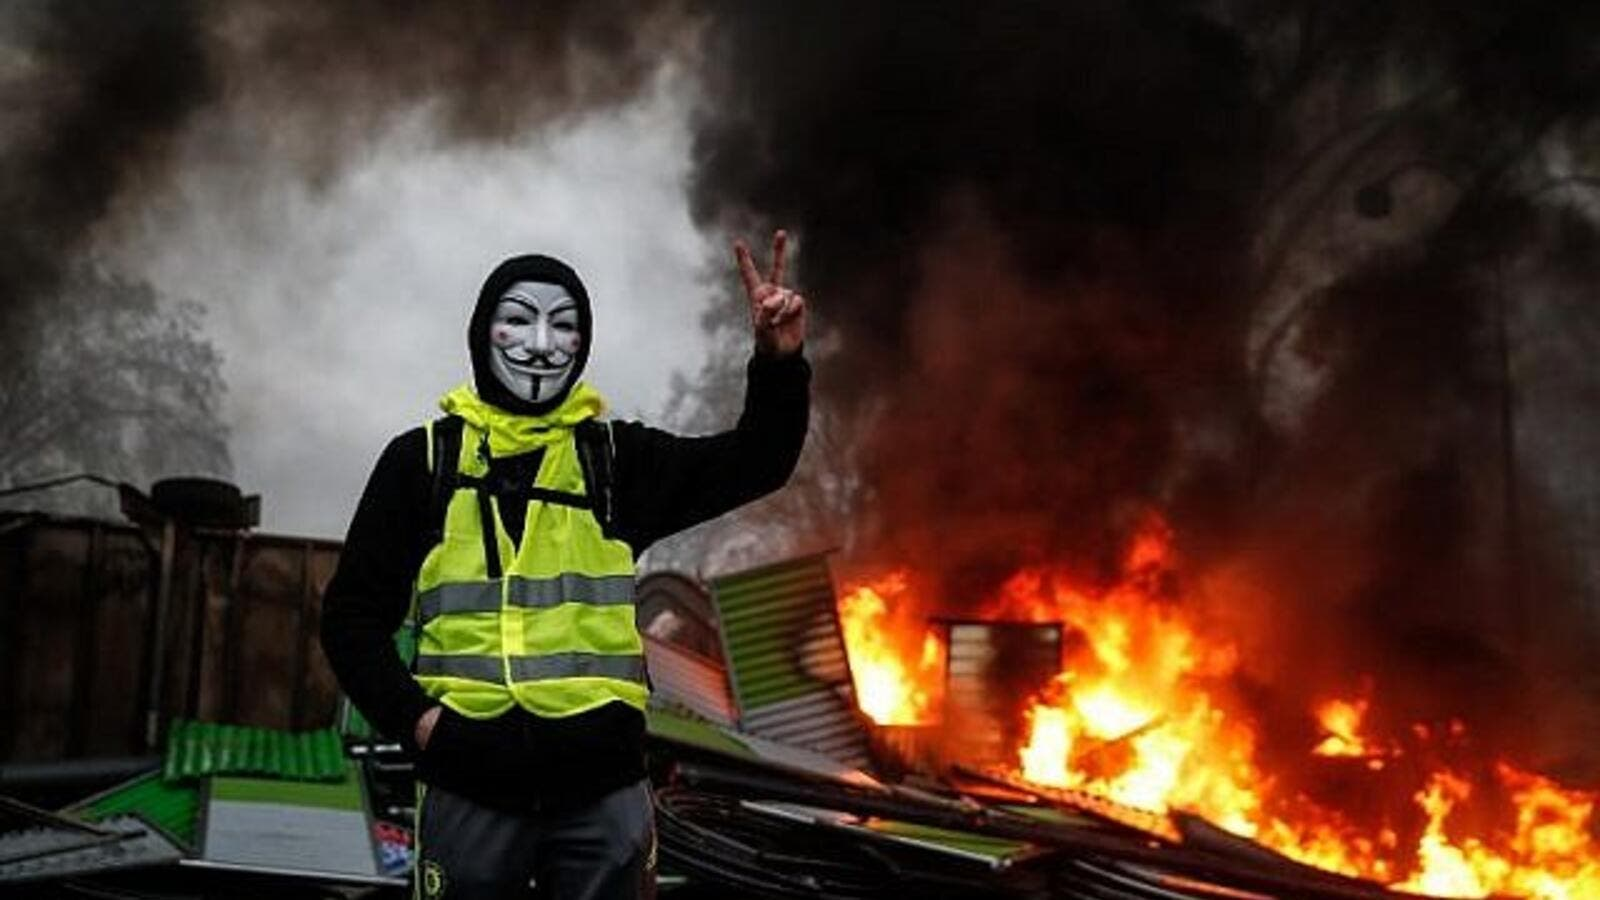 A protester wearing a Guy Fawkes mask makes the 'Victory' sign during a protest of the Yellow Vests against rising oil prices and living costs, on December 1, 2018, in Paris. (AFP)